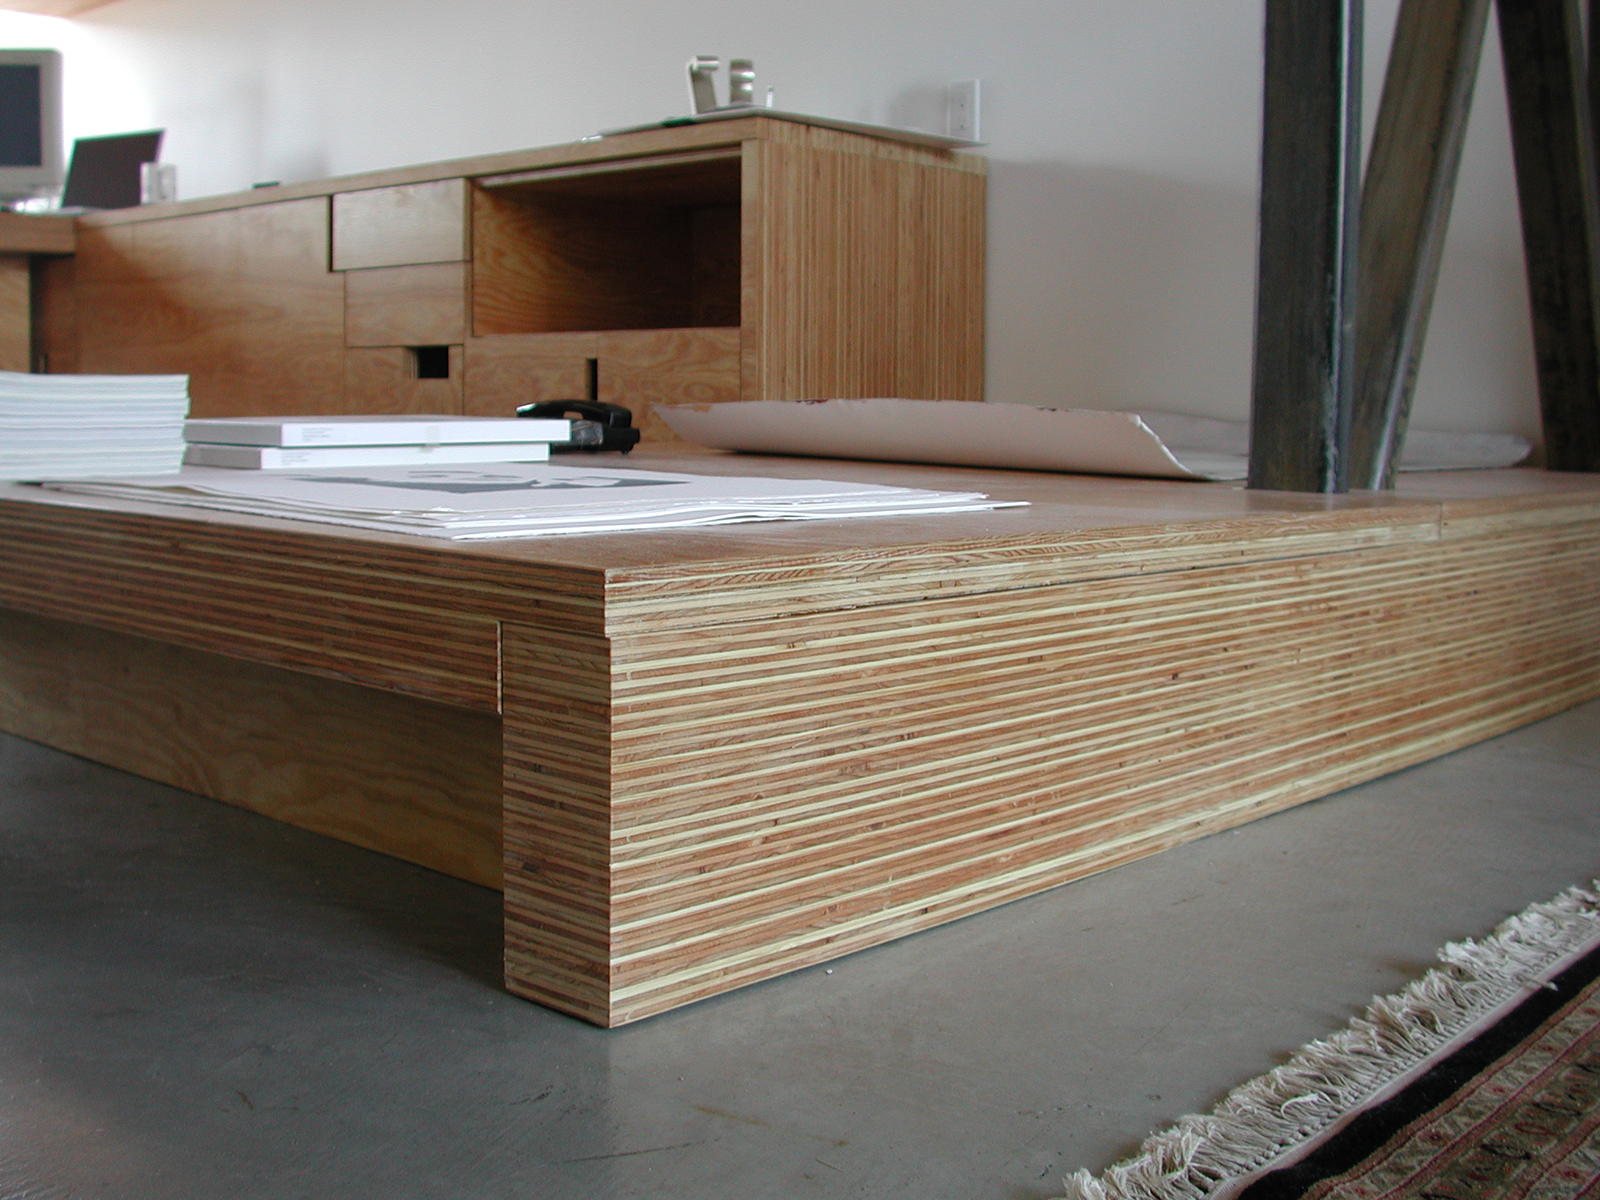 Detail of how the daybed relates to the floor as a continuation of the countertop surface of the cabinetry.